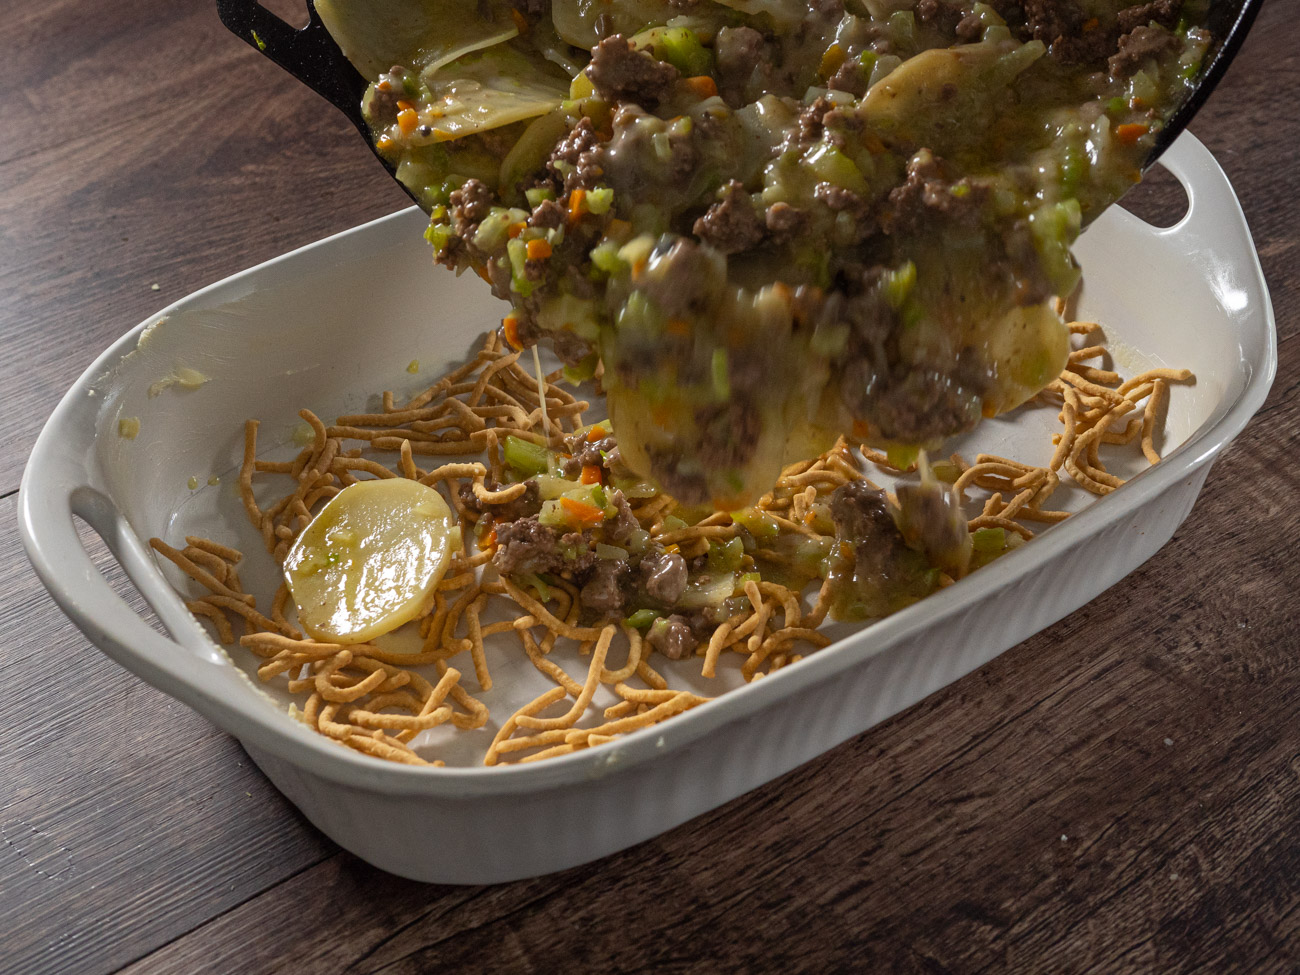 Line casserole dish with half the chow mein noodles and spoon beef and vegetable mixture on top.